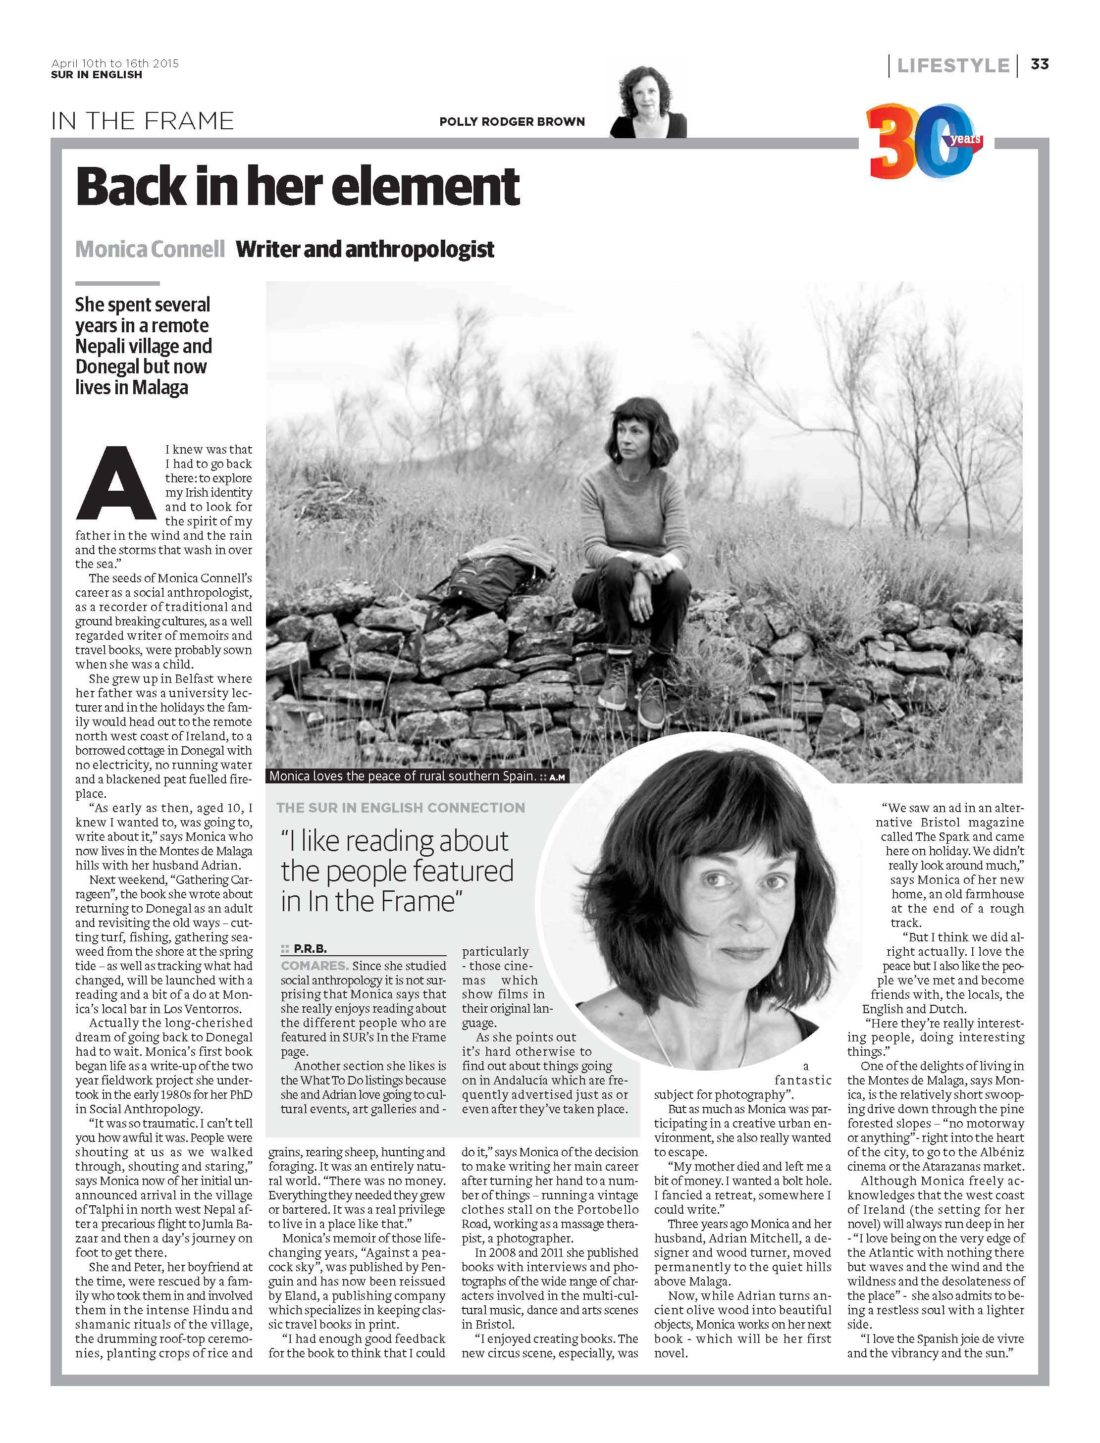 Monica Connell Article in Sur in English Newspaper -